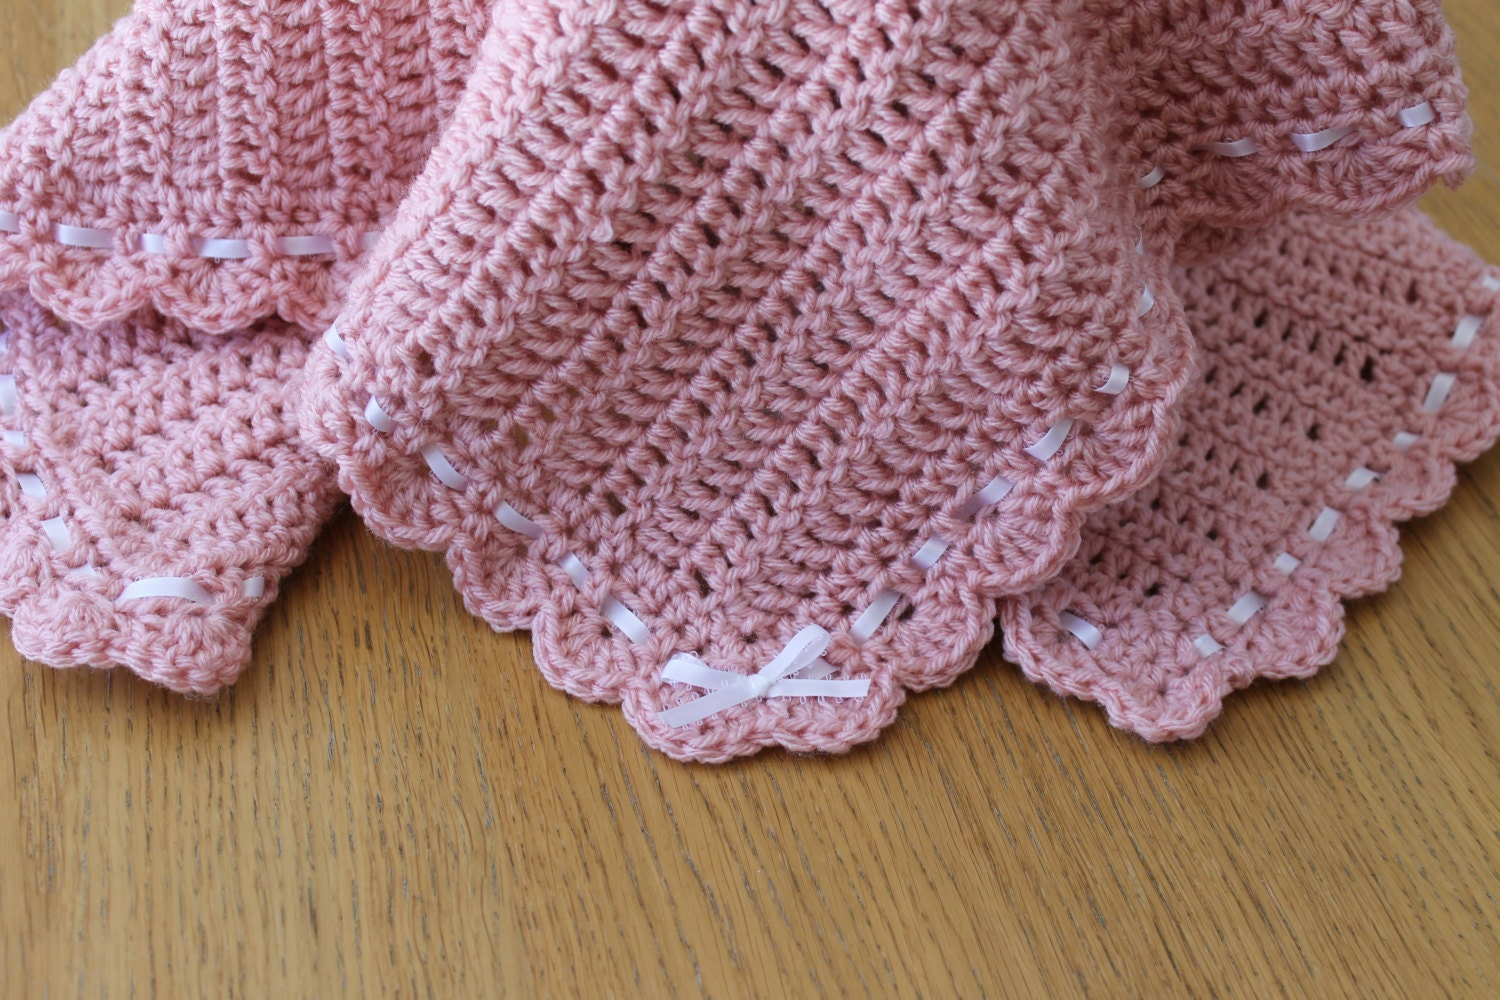 Crochet Pink Baby Blanket/Afghan with Shell Edging by KirstsKorner